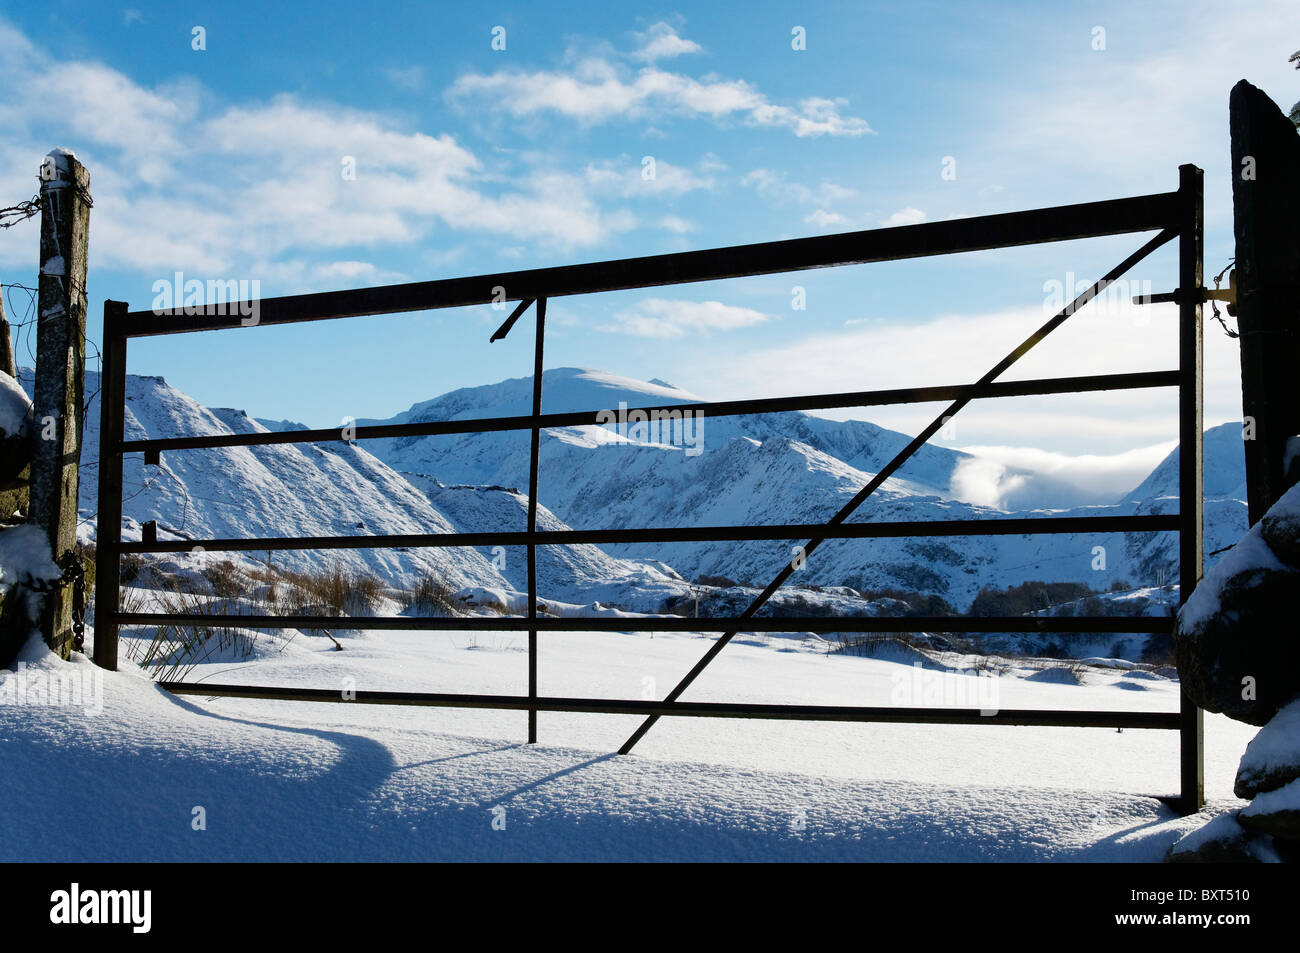 The Snowdon massif in winter, seen through a barred gate. Stock Photo